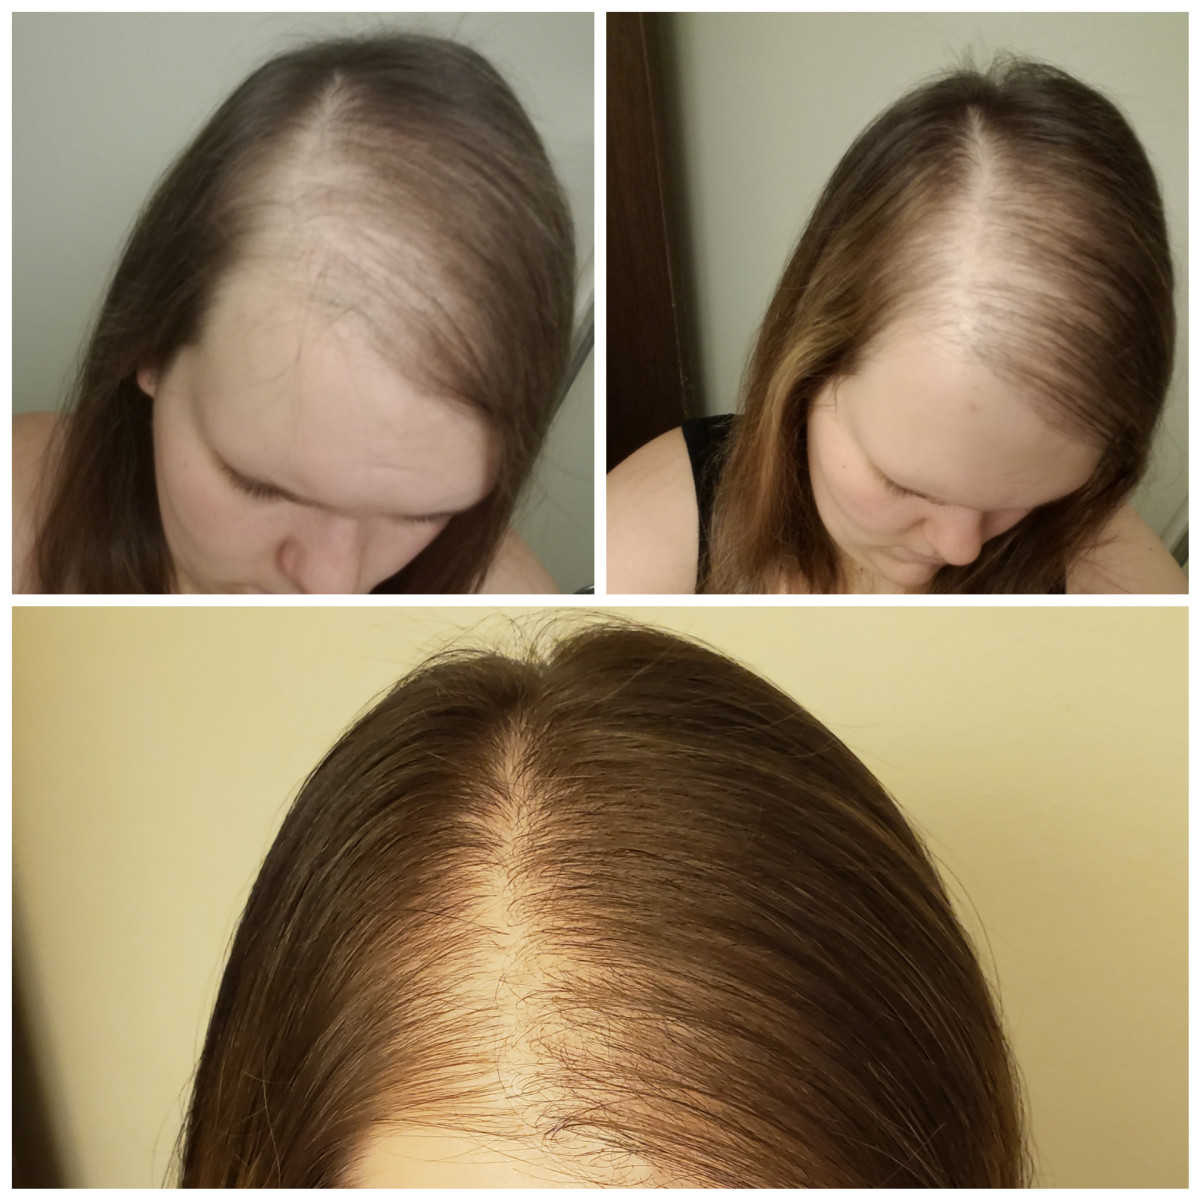 hair-loss-in-young-women